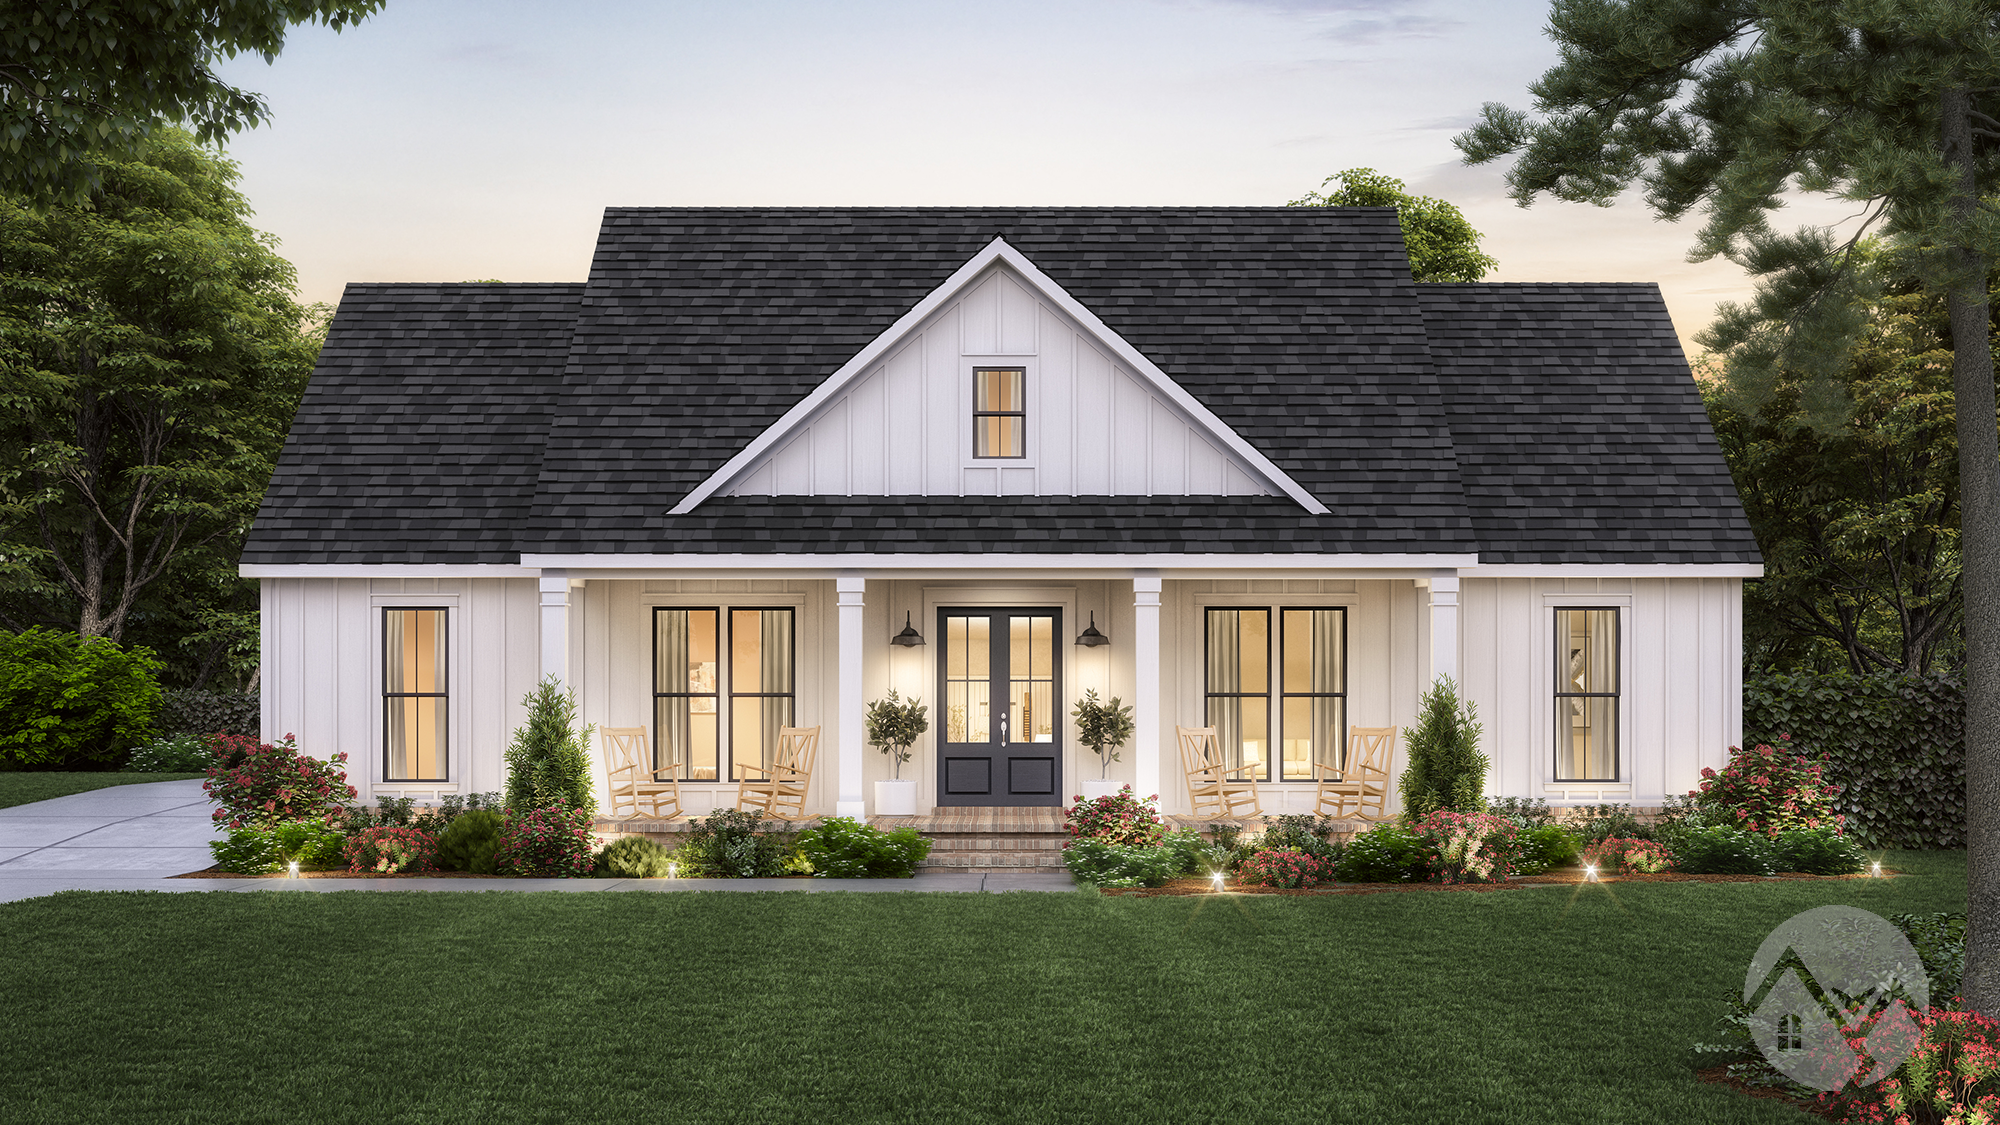 Architectural Rendering: 3 benefits you can't miss!